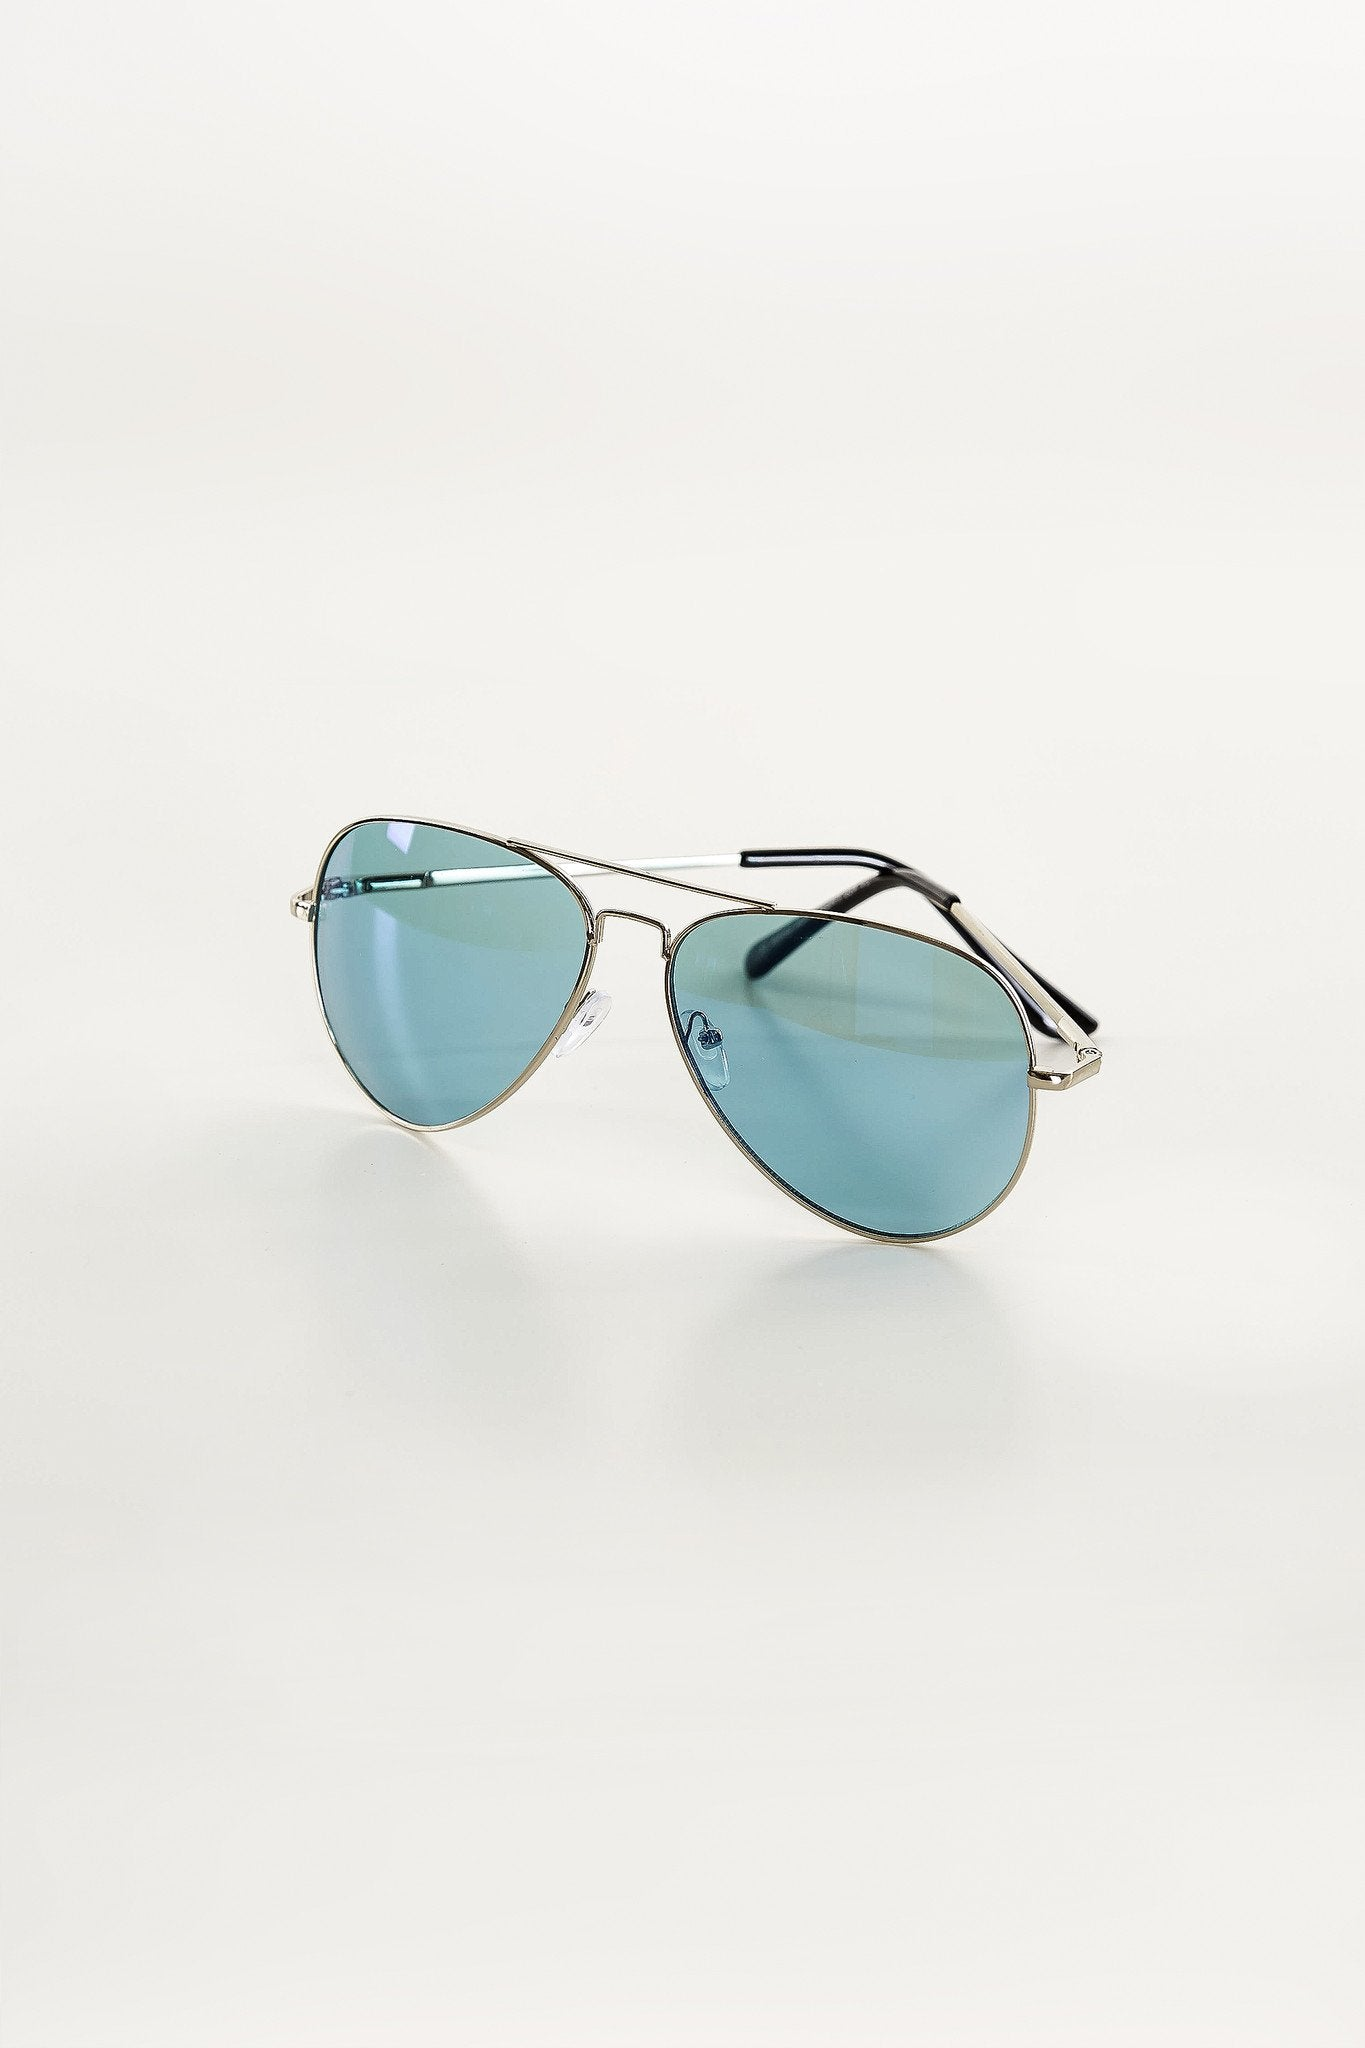 A dope pair of colored sunglasses. These shades have mirroed/tinted lenses with metal frame. Pair with any outfit!